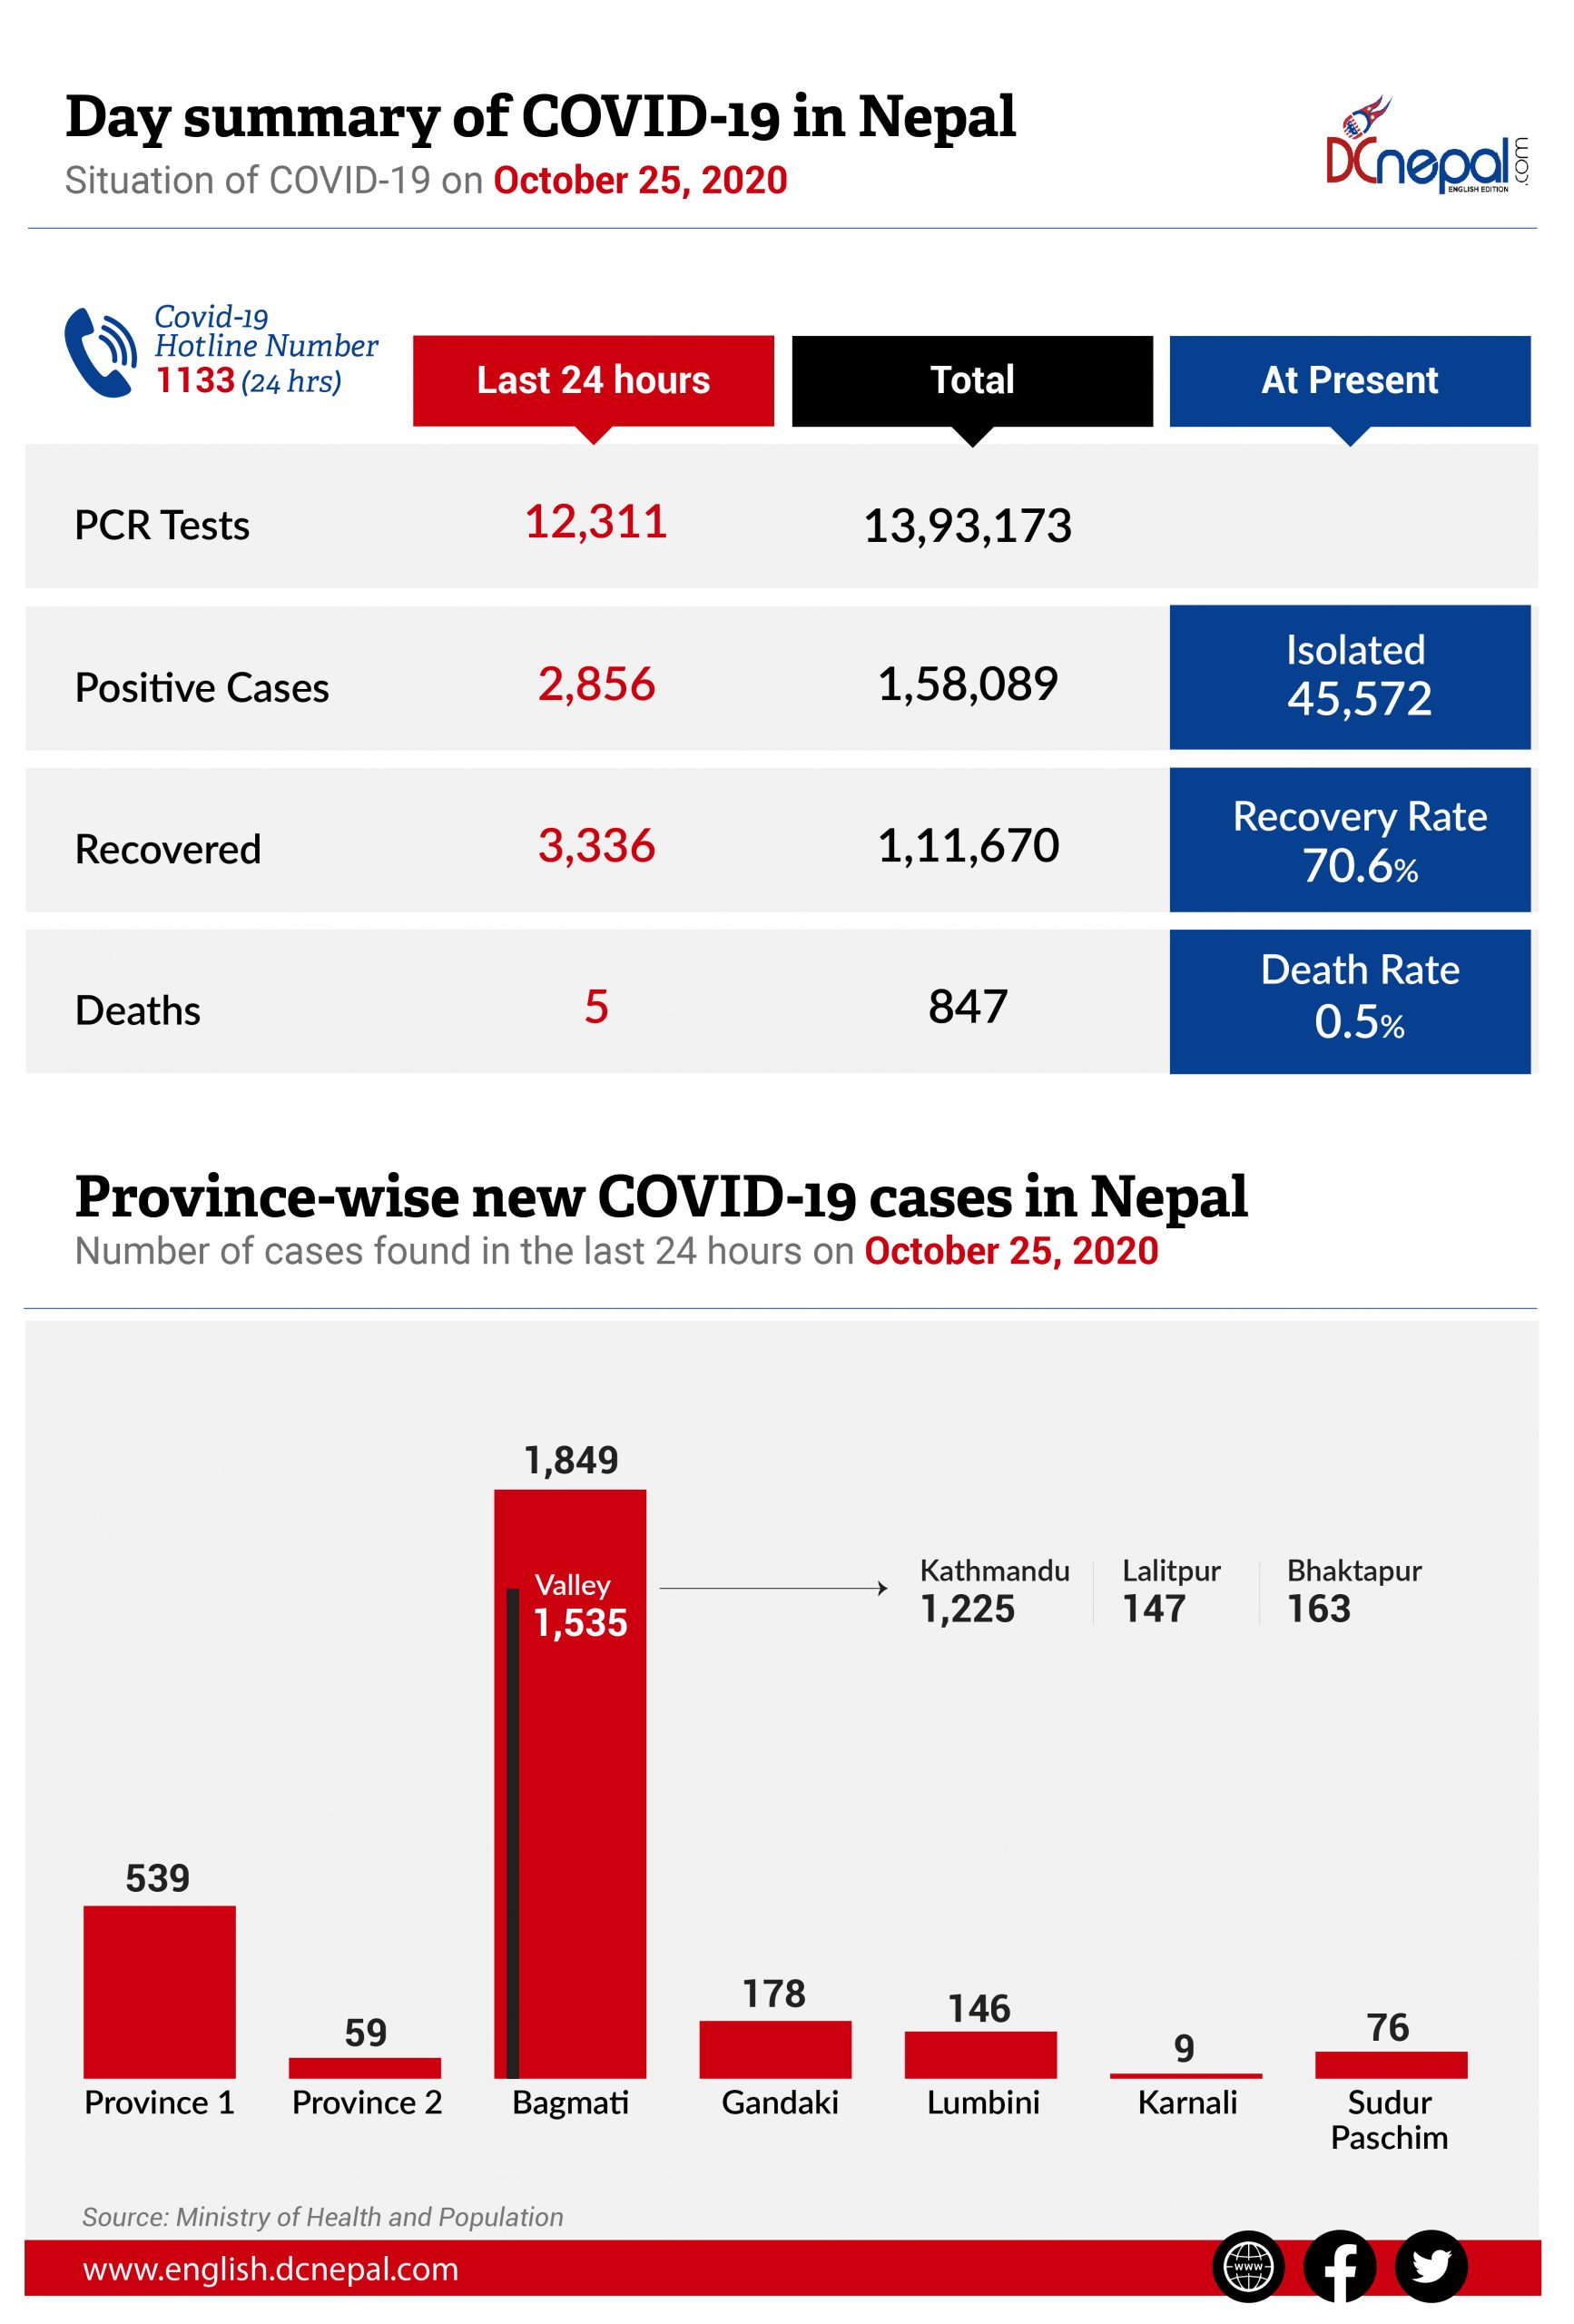 45,572 COVID-19 patients in isolation on the ninth day of Dashain Festival in Nepal